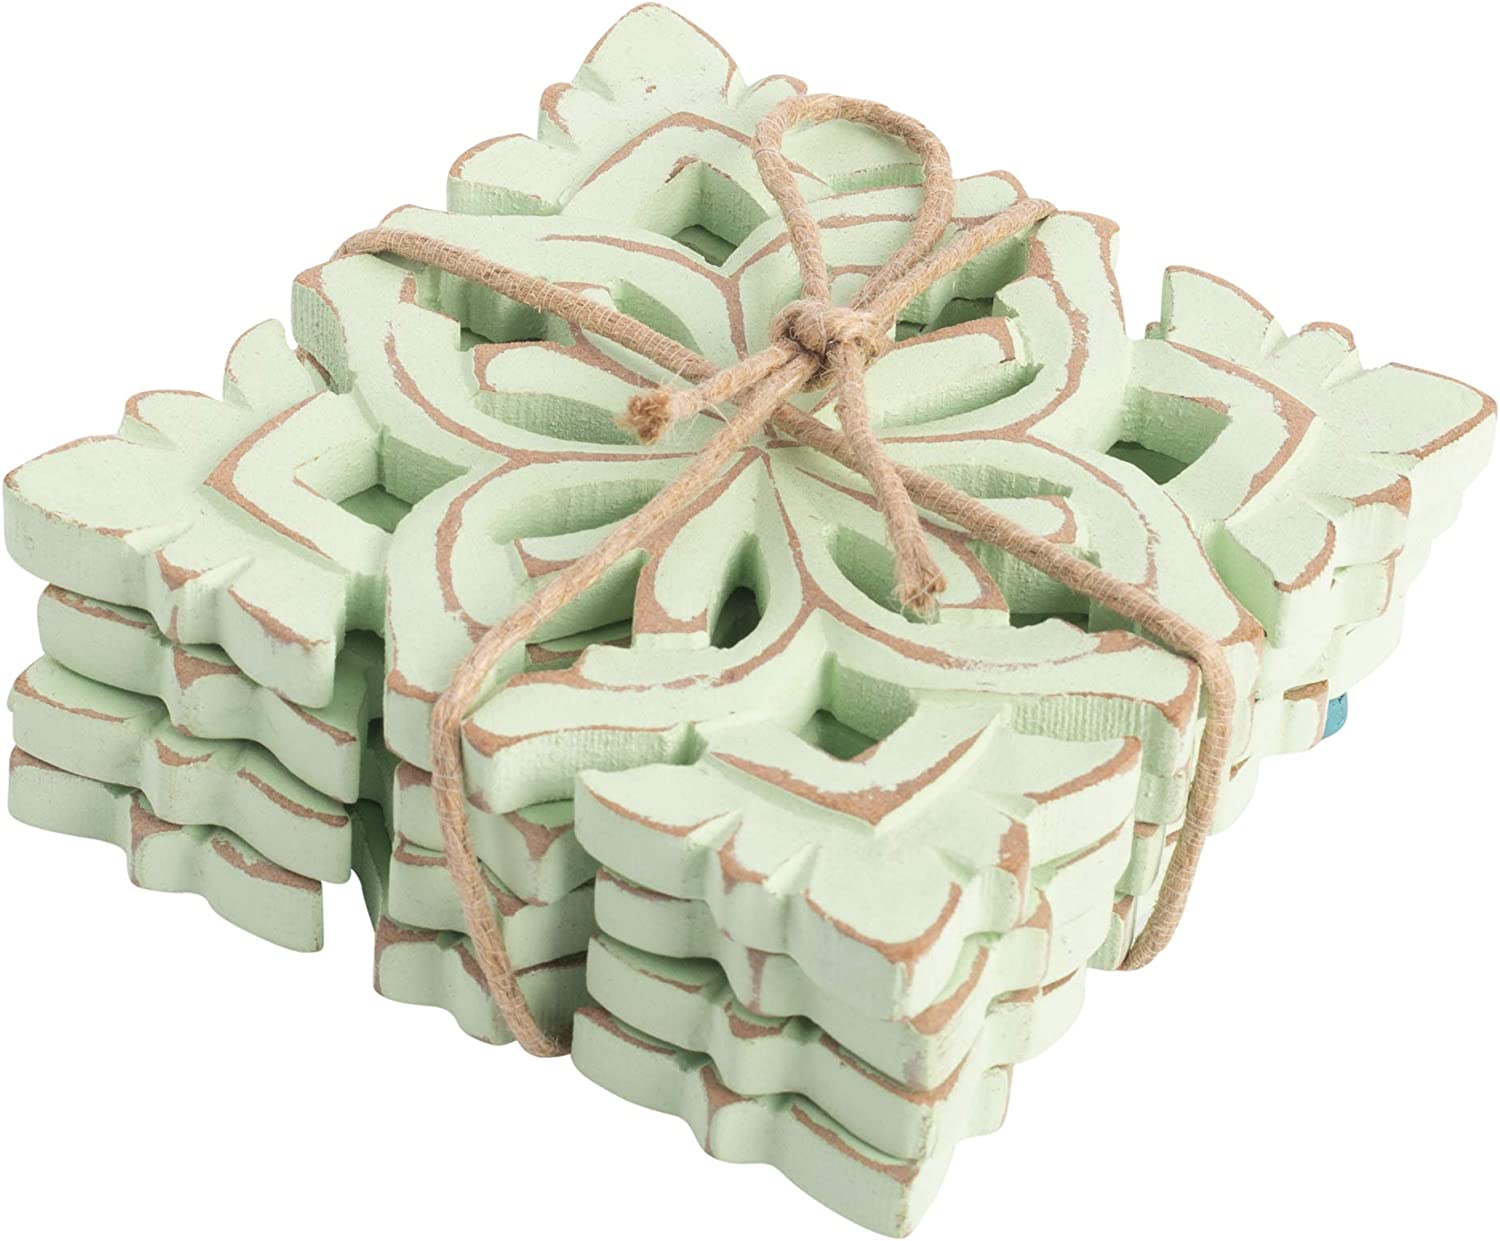 Farmhouse Decor Wood Coasters for Drinks - Kitchen Table Drink Coaster Set of 4 (Square Carved Blossom Sage Green)